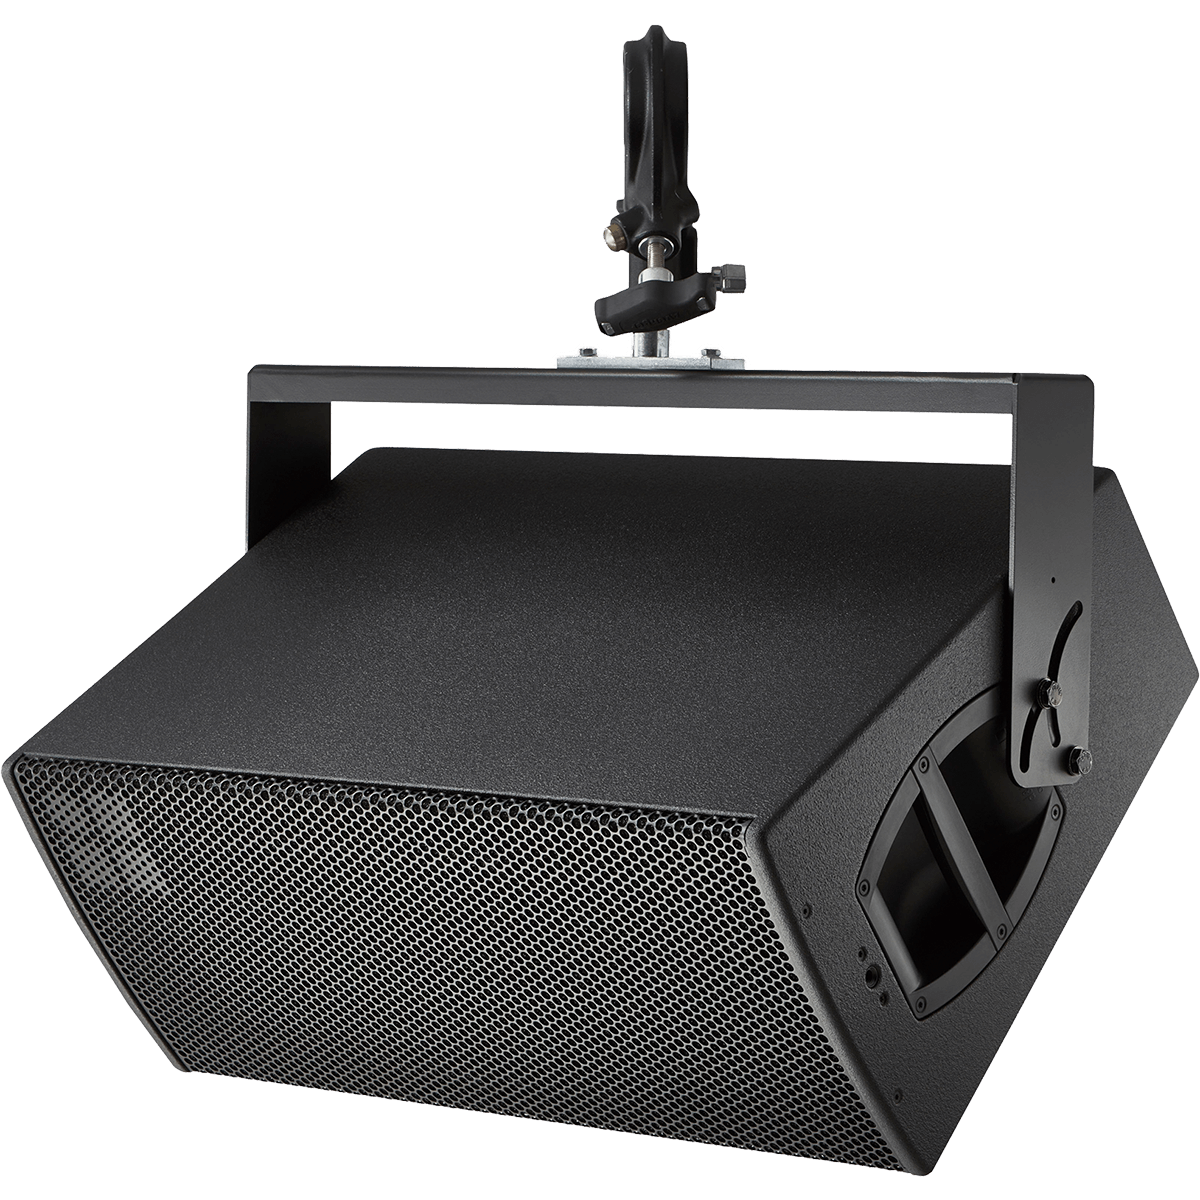 V7P loudspeaker with accessory